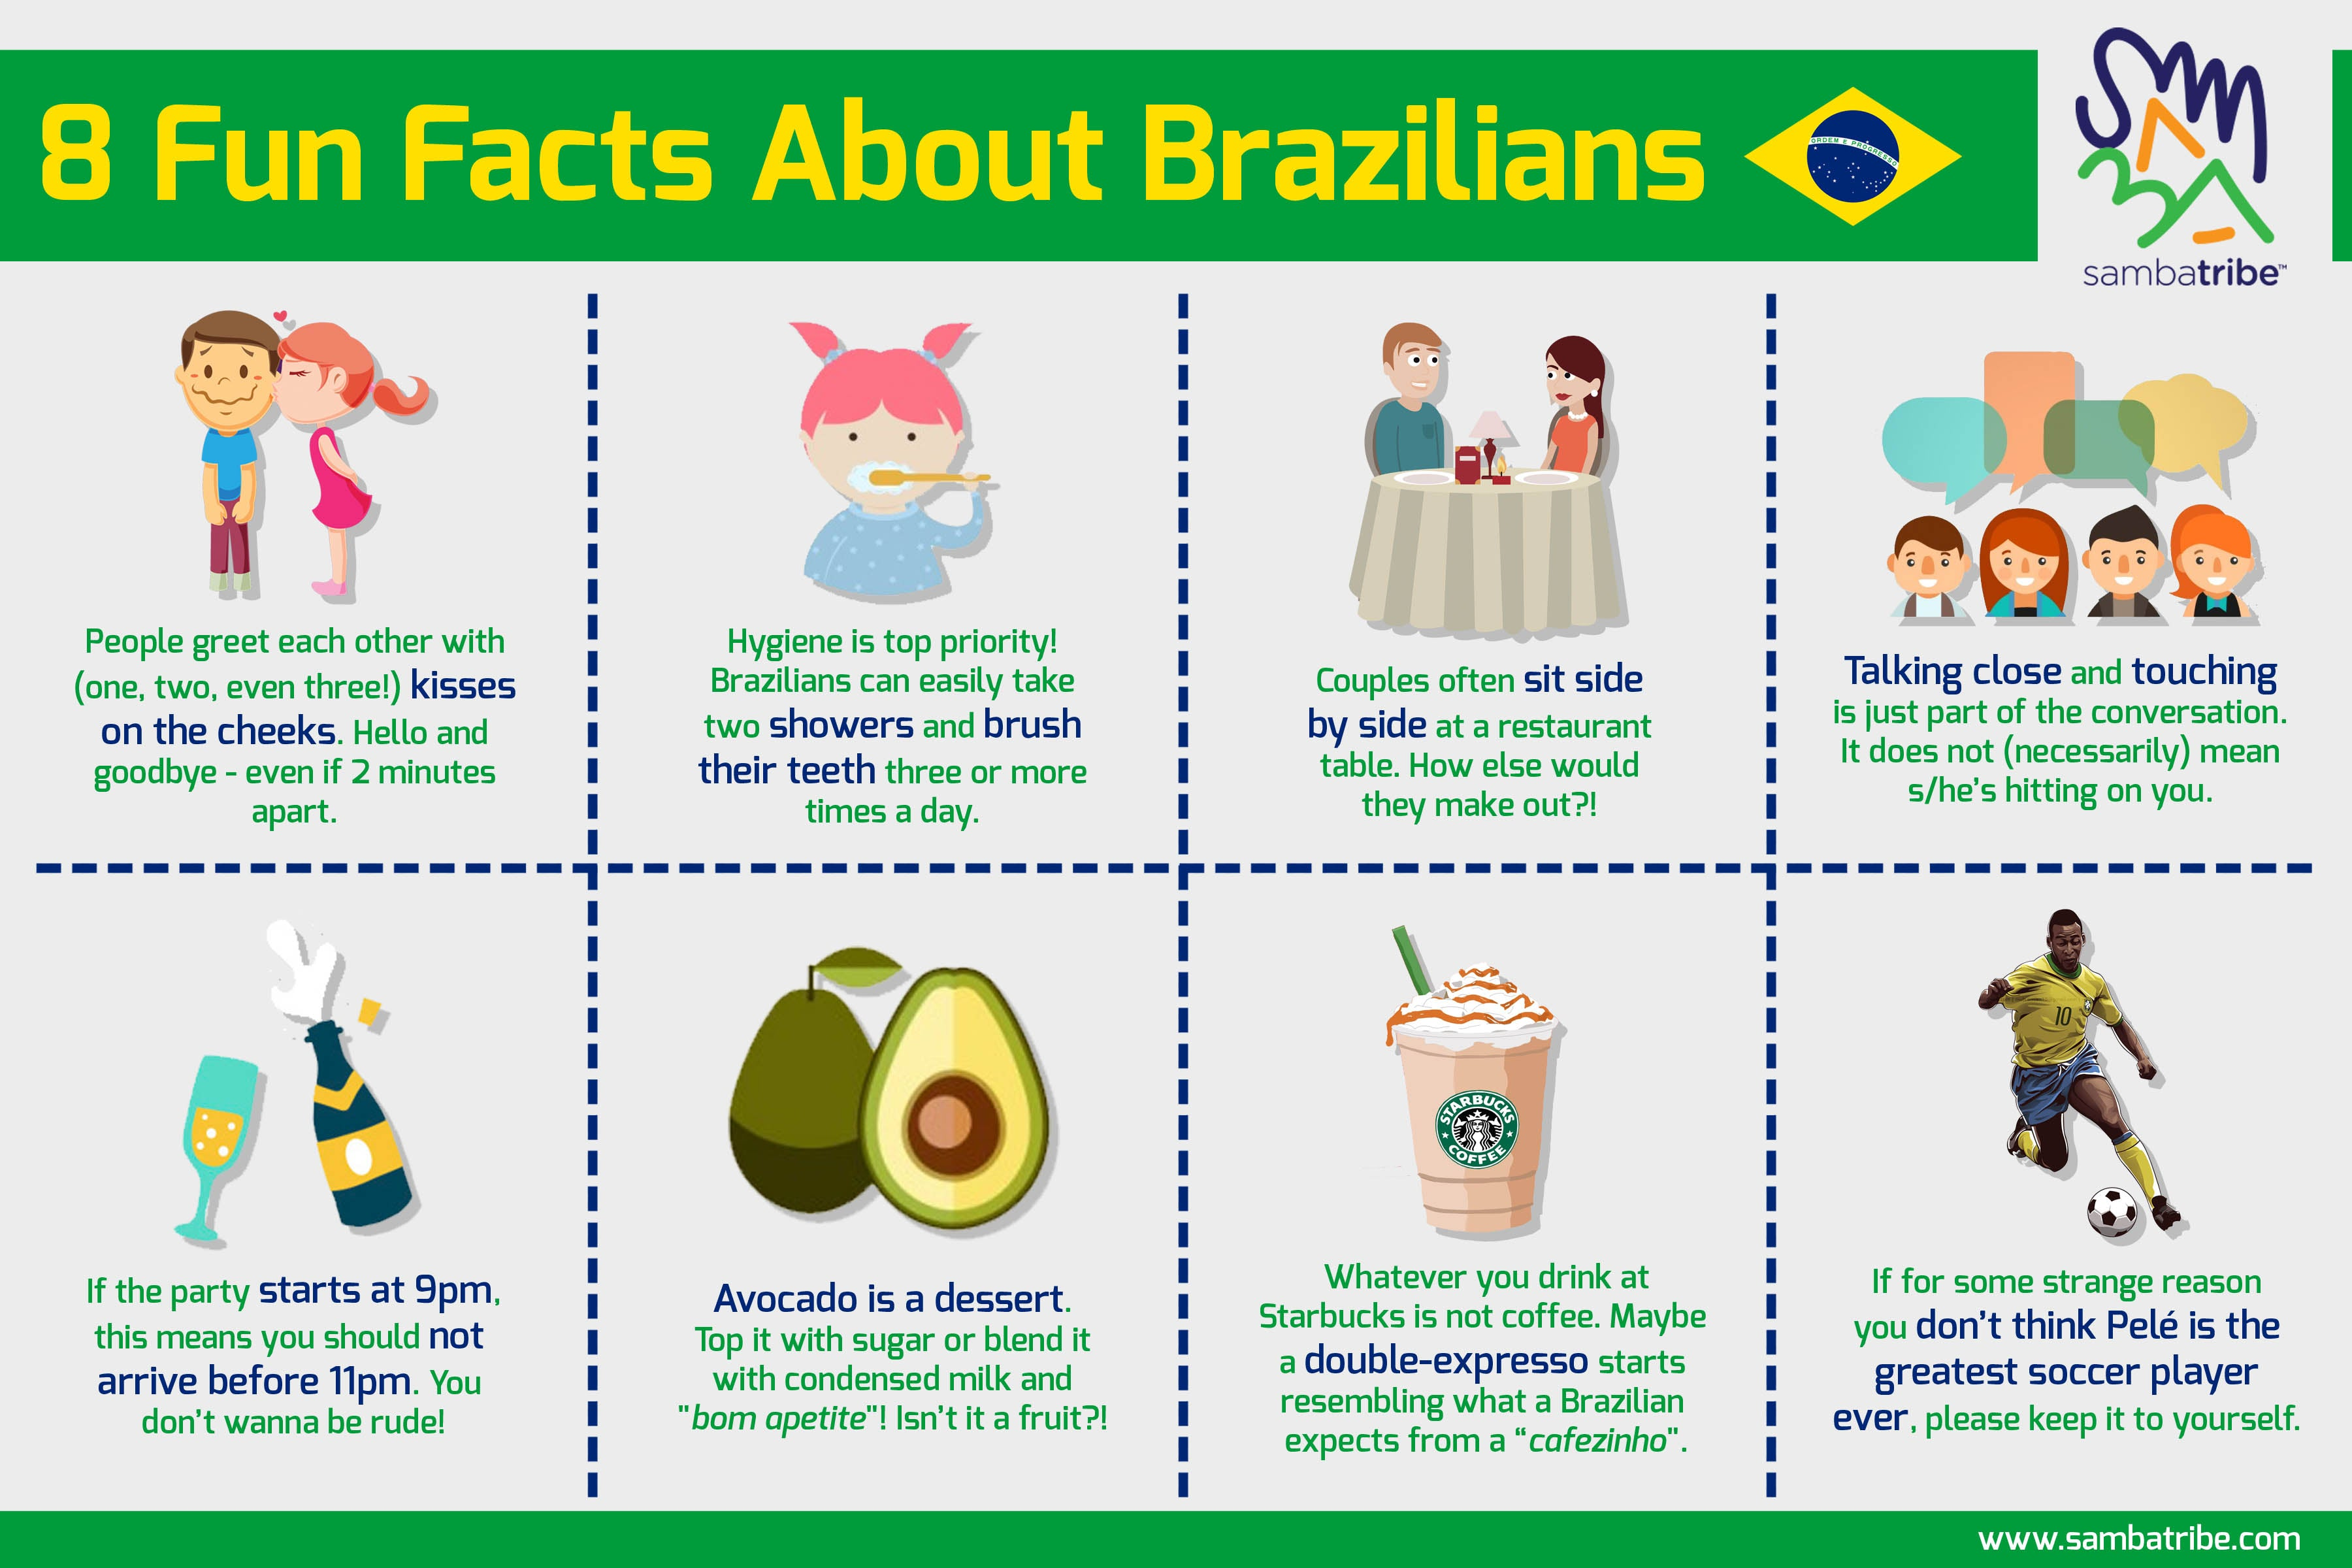 Fun facts about brazilians infographic